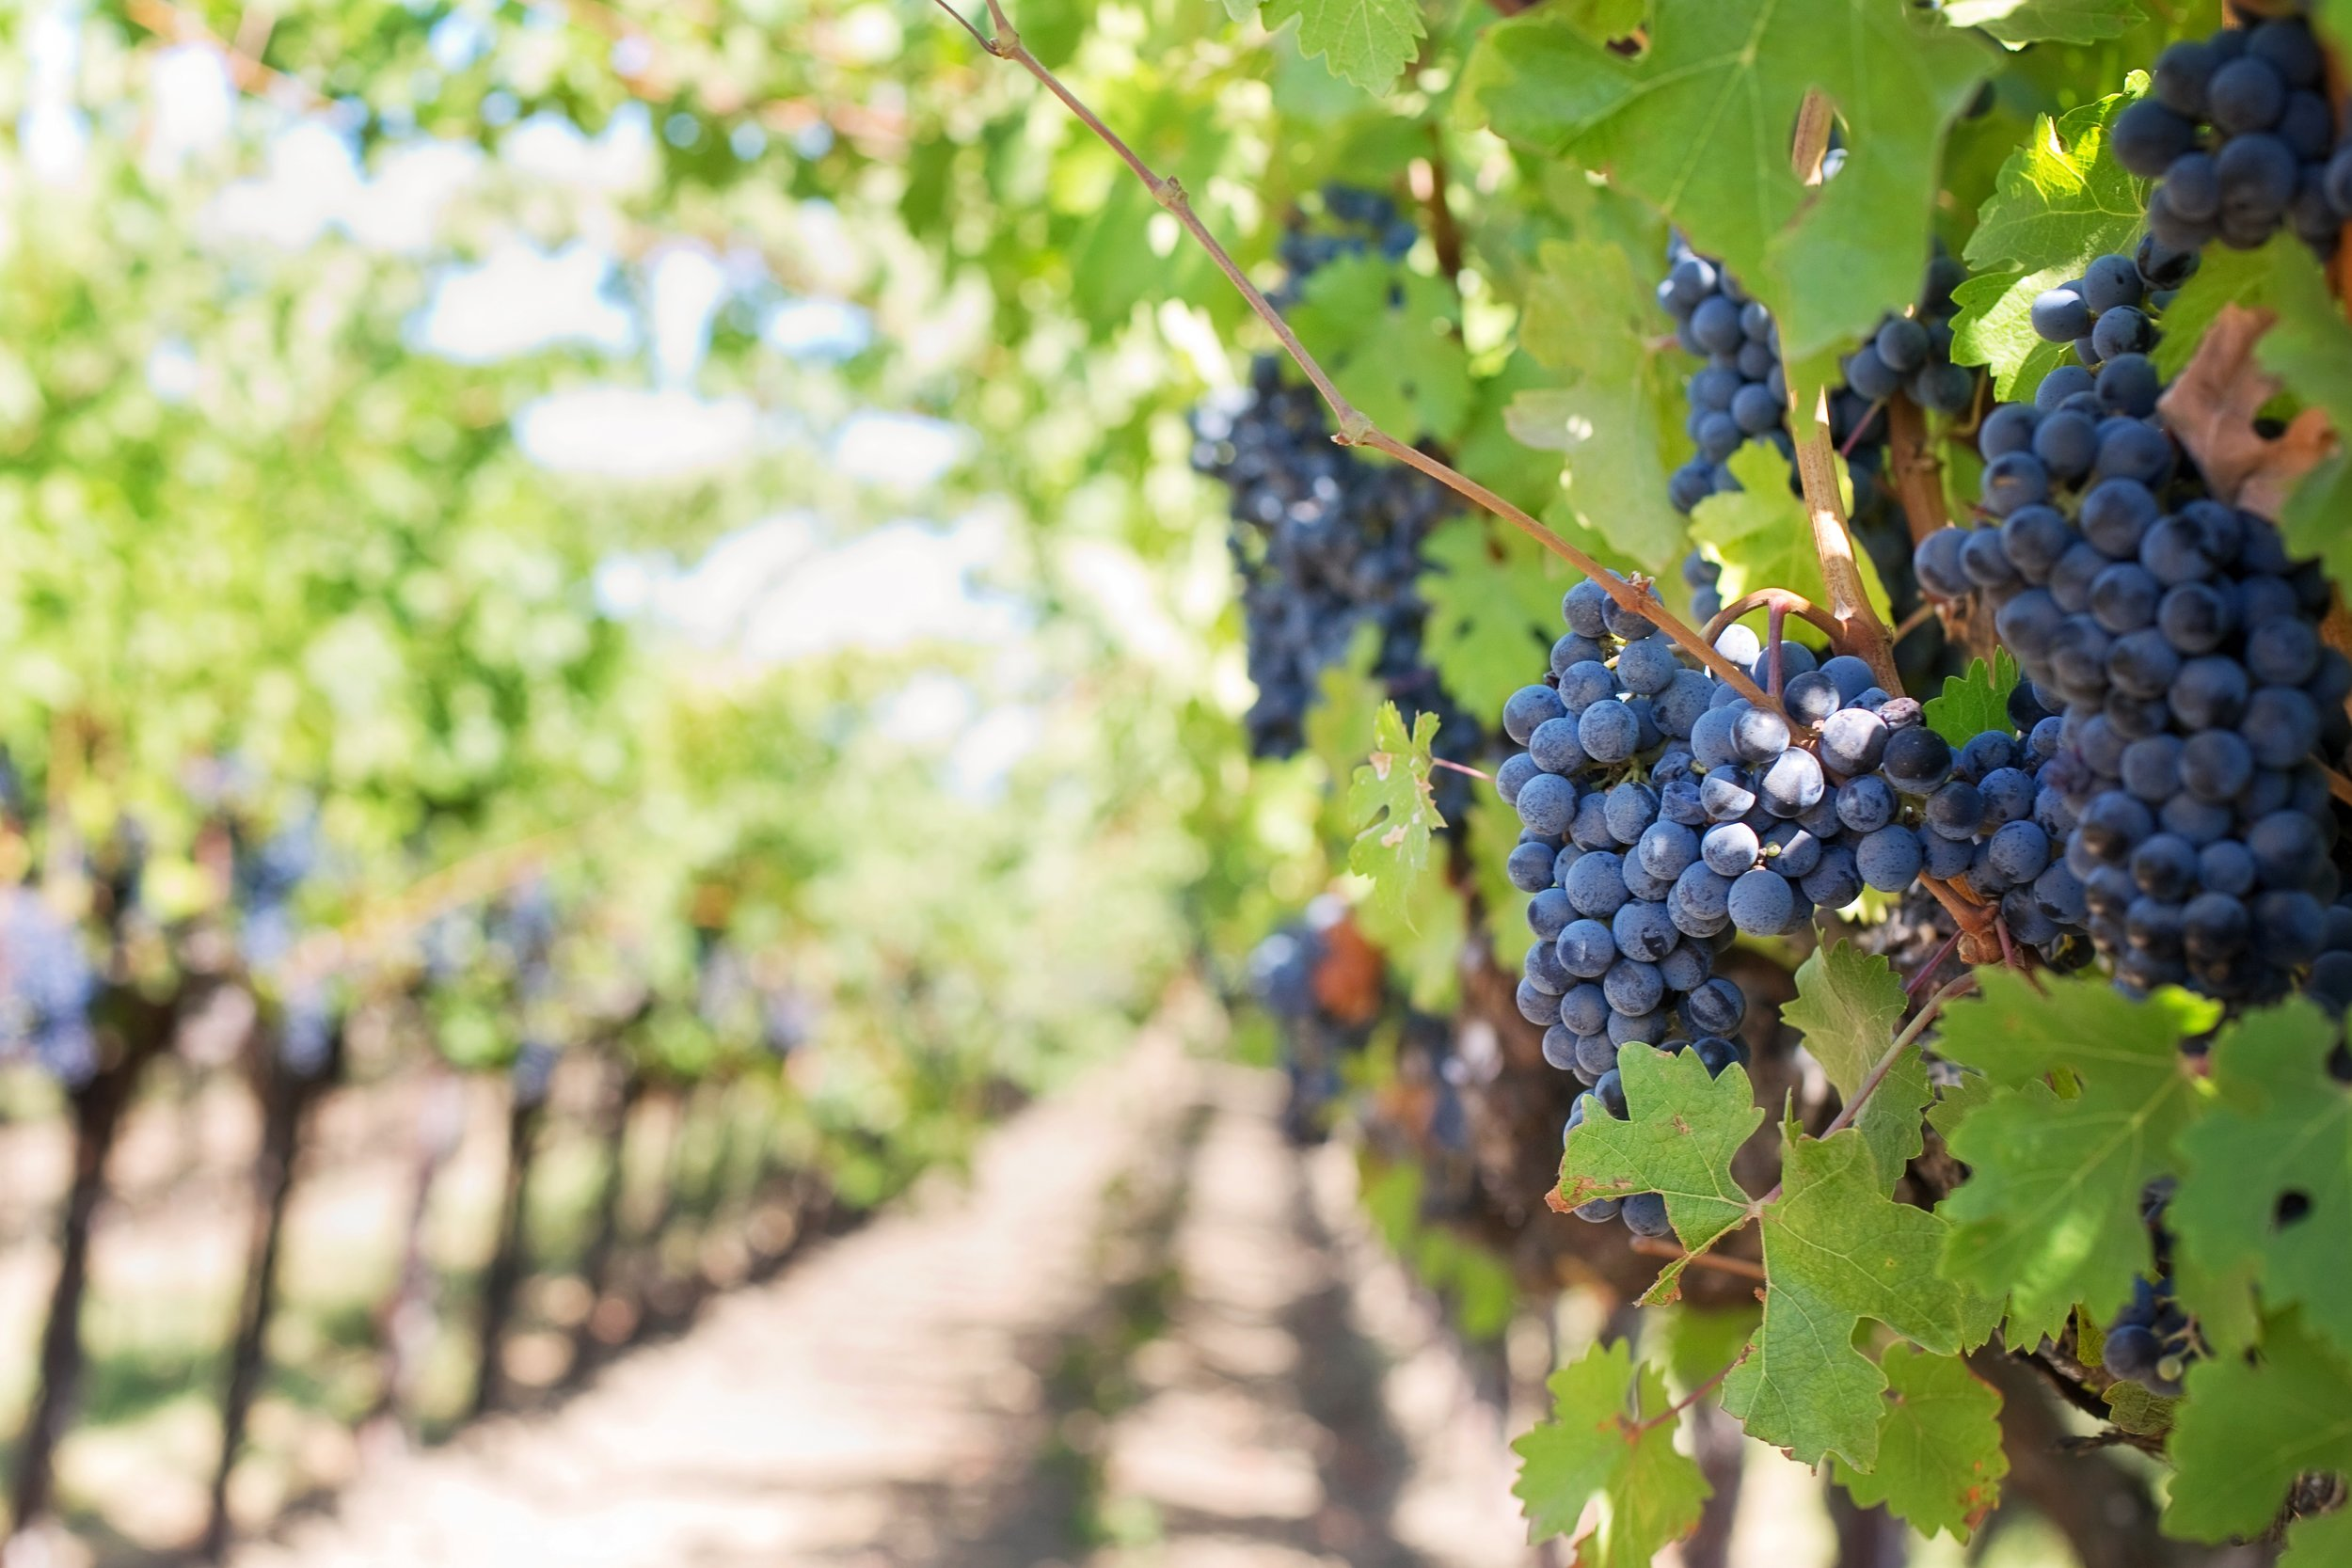 purple-grapes-vineyard-napa-valley-napa-vineyard-39351.jpeg